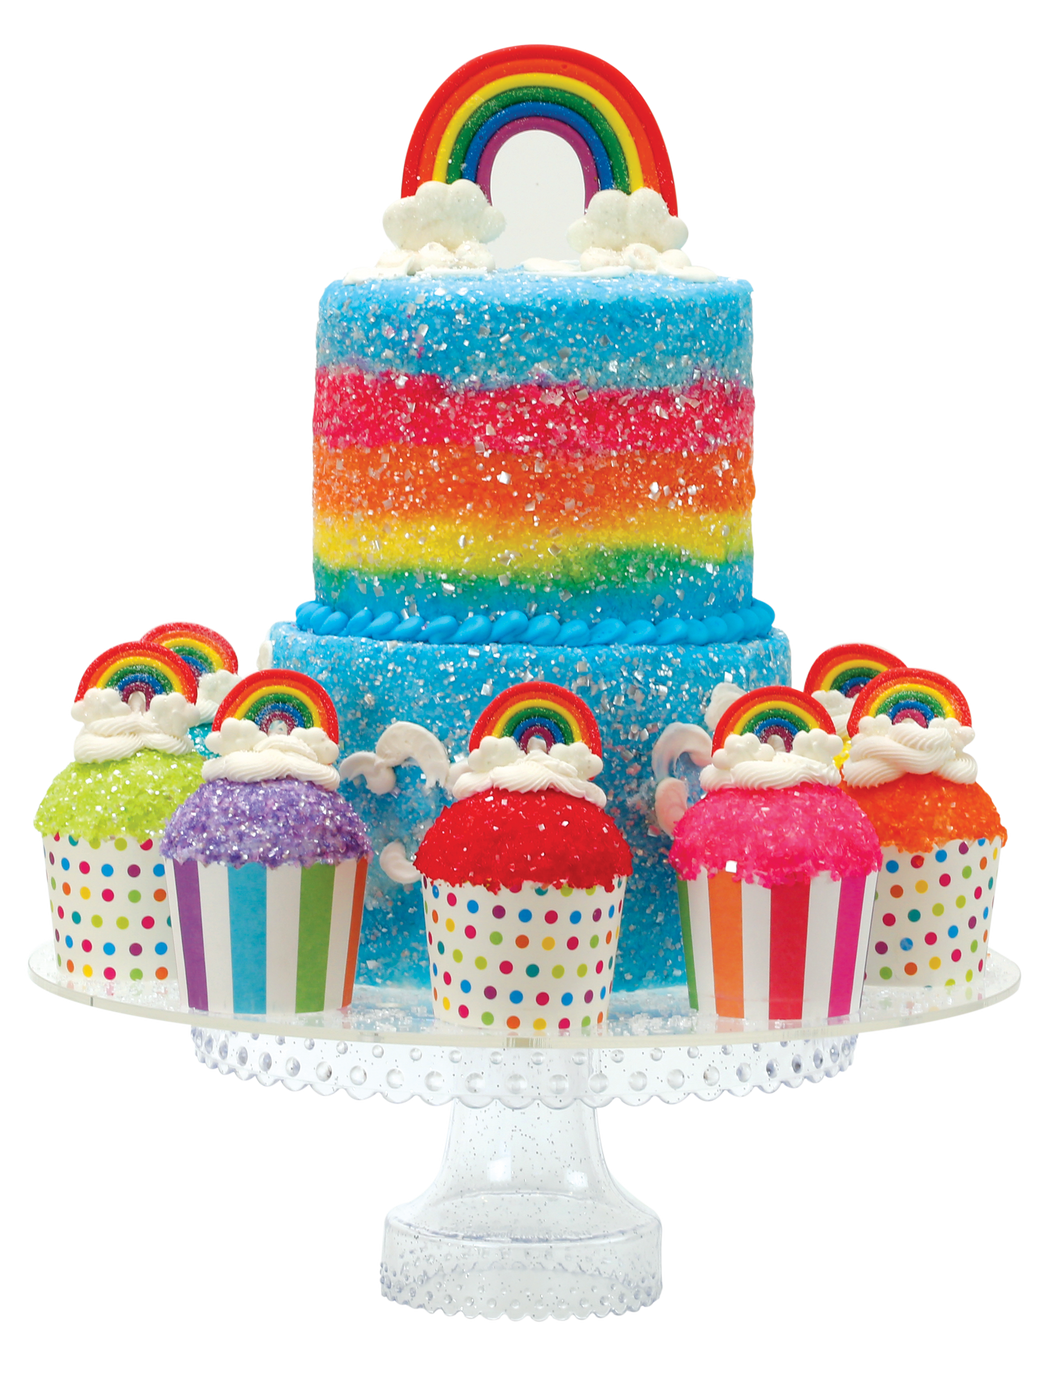 Over the Rainbow Designer Cake Décor